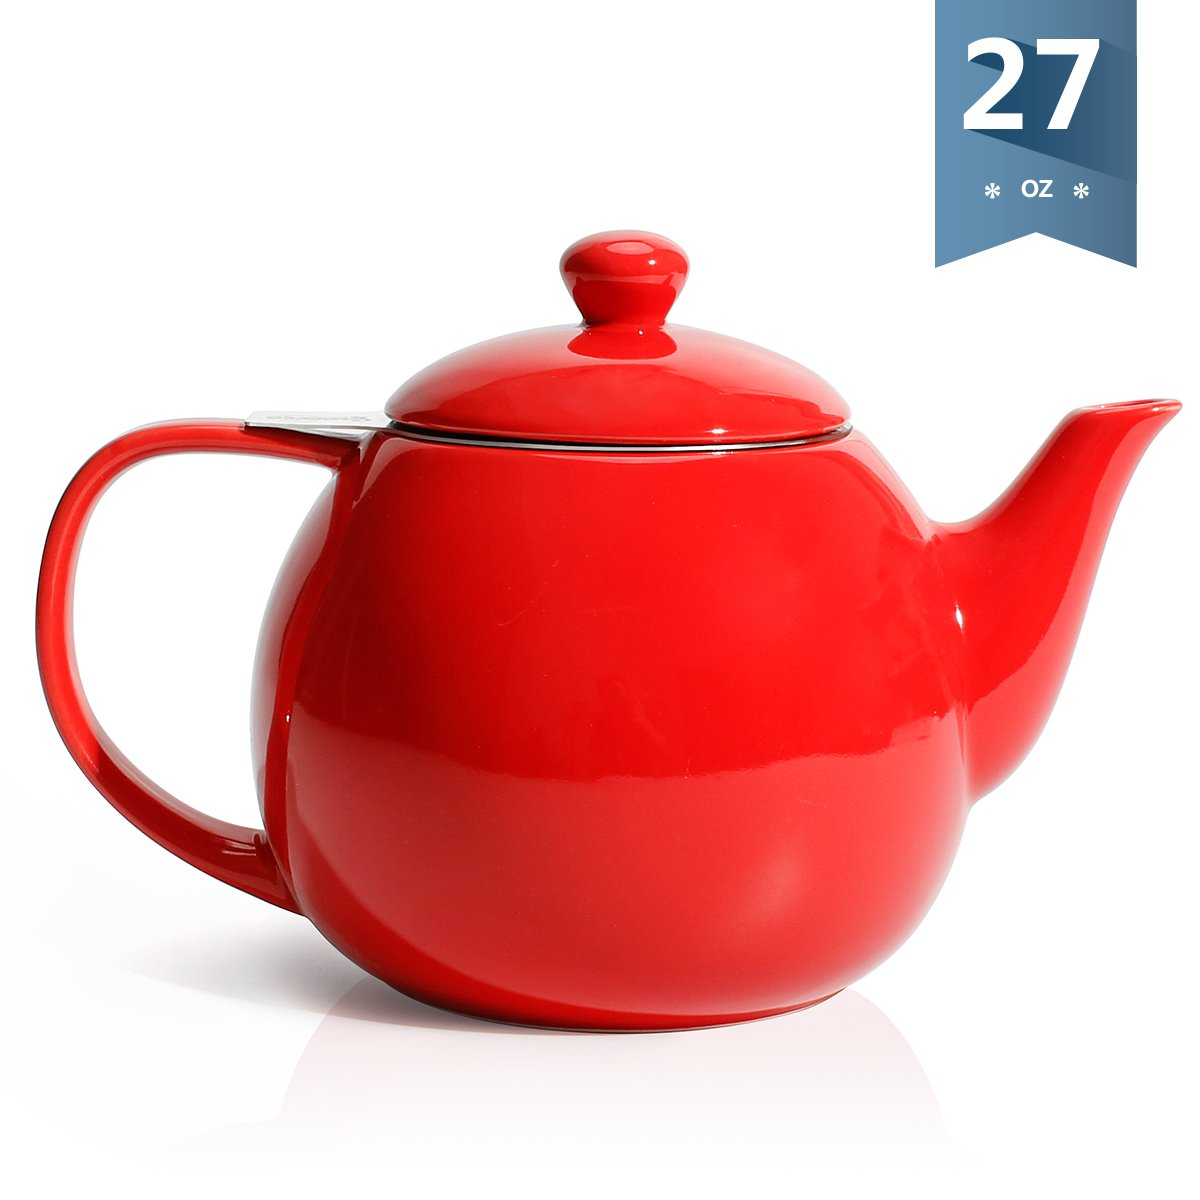 Sweese 2309 Teapot, Porcelain Tea Pot with Stainless Steel Infuser, Blooming & Loose Leaf Teapot - 27 ounce, Red